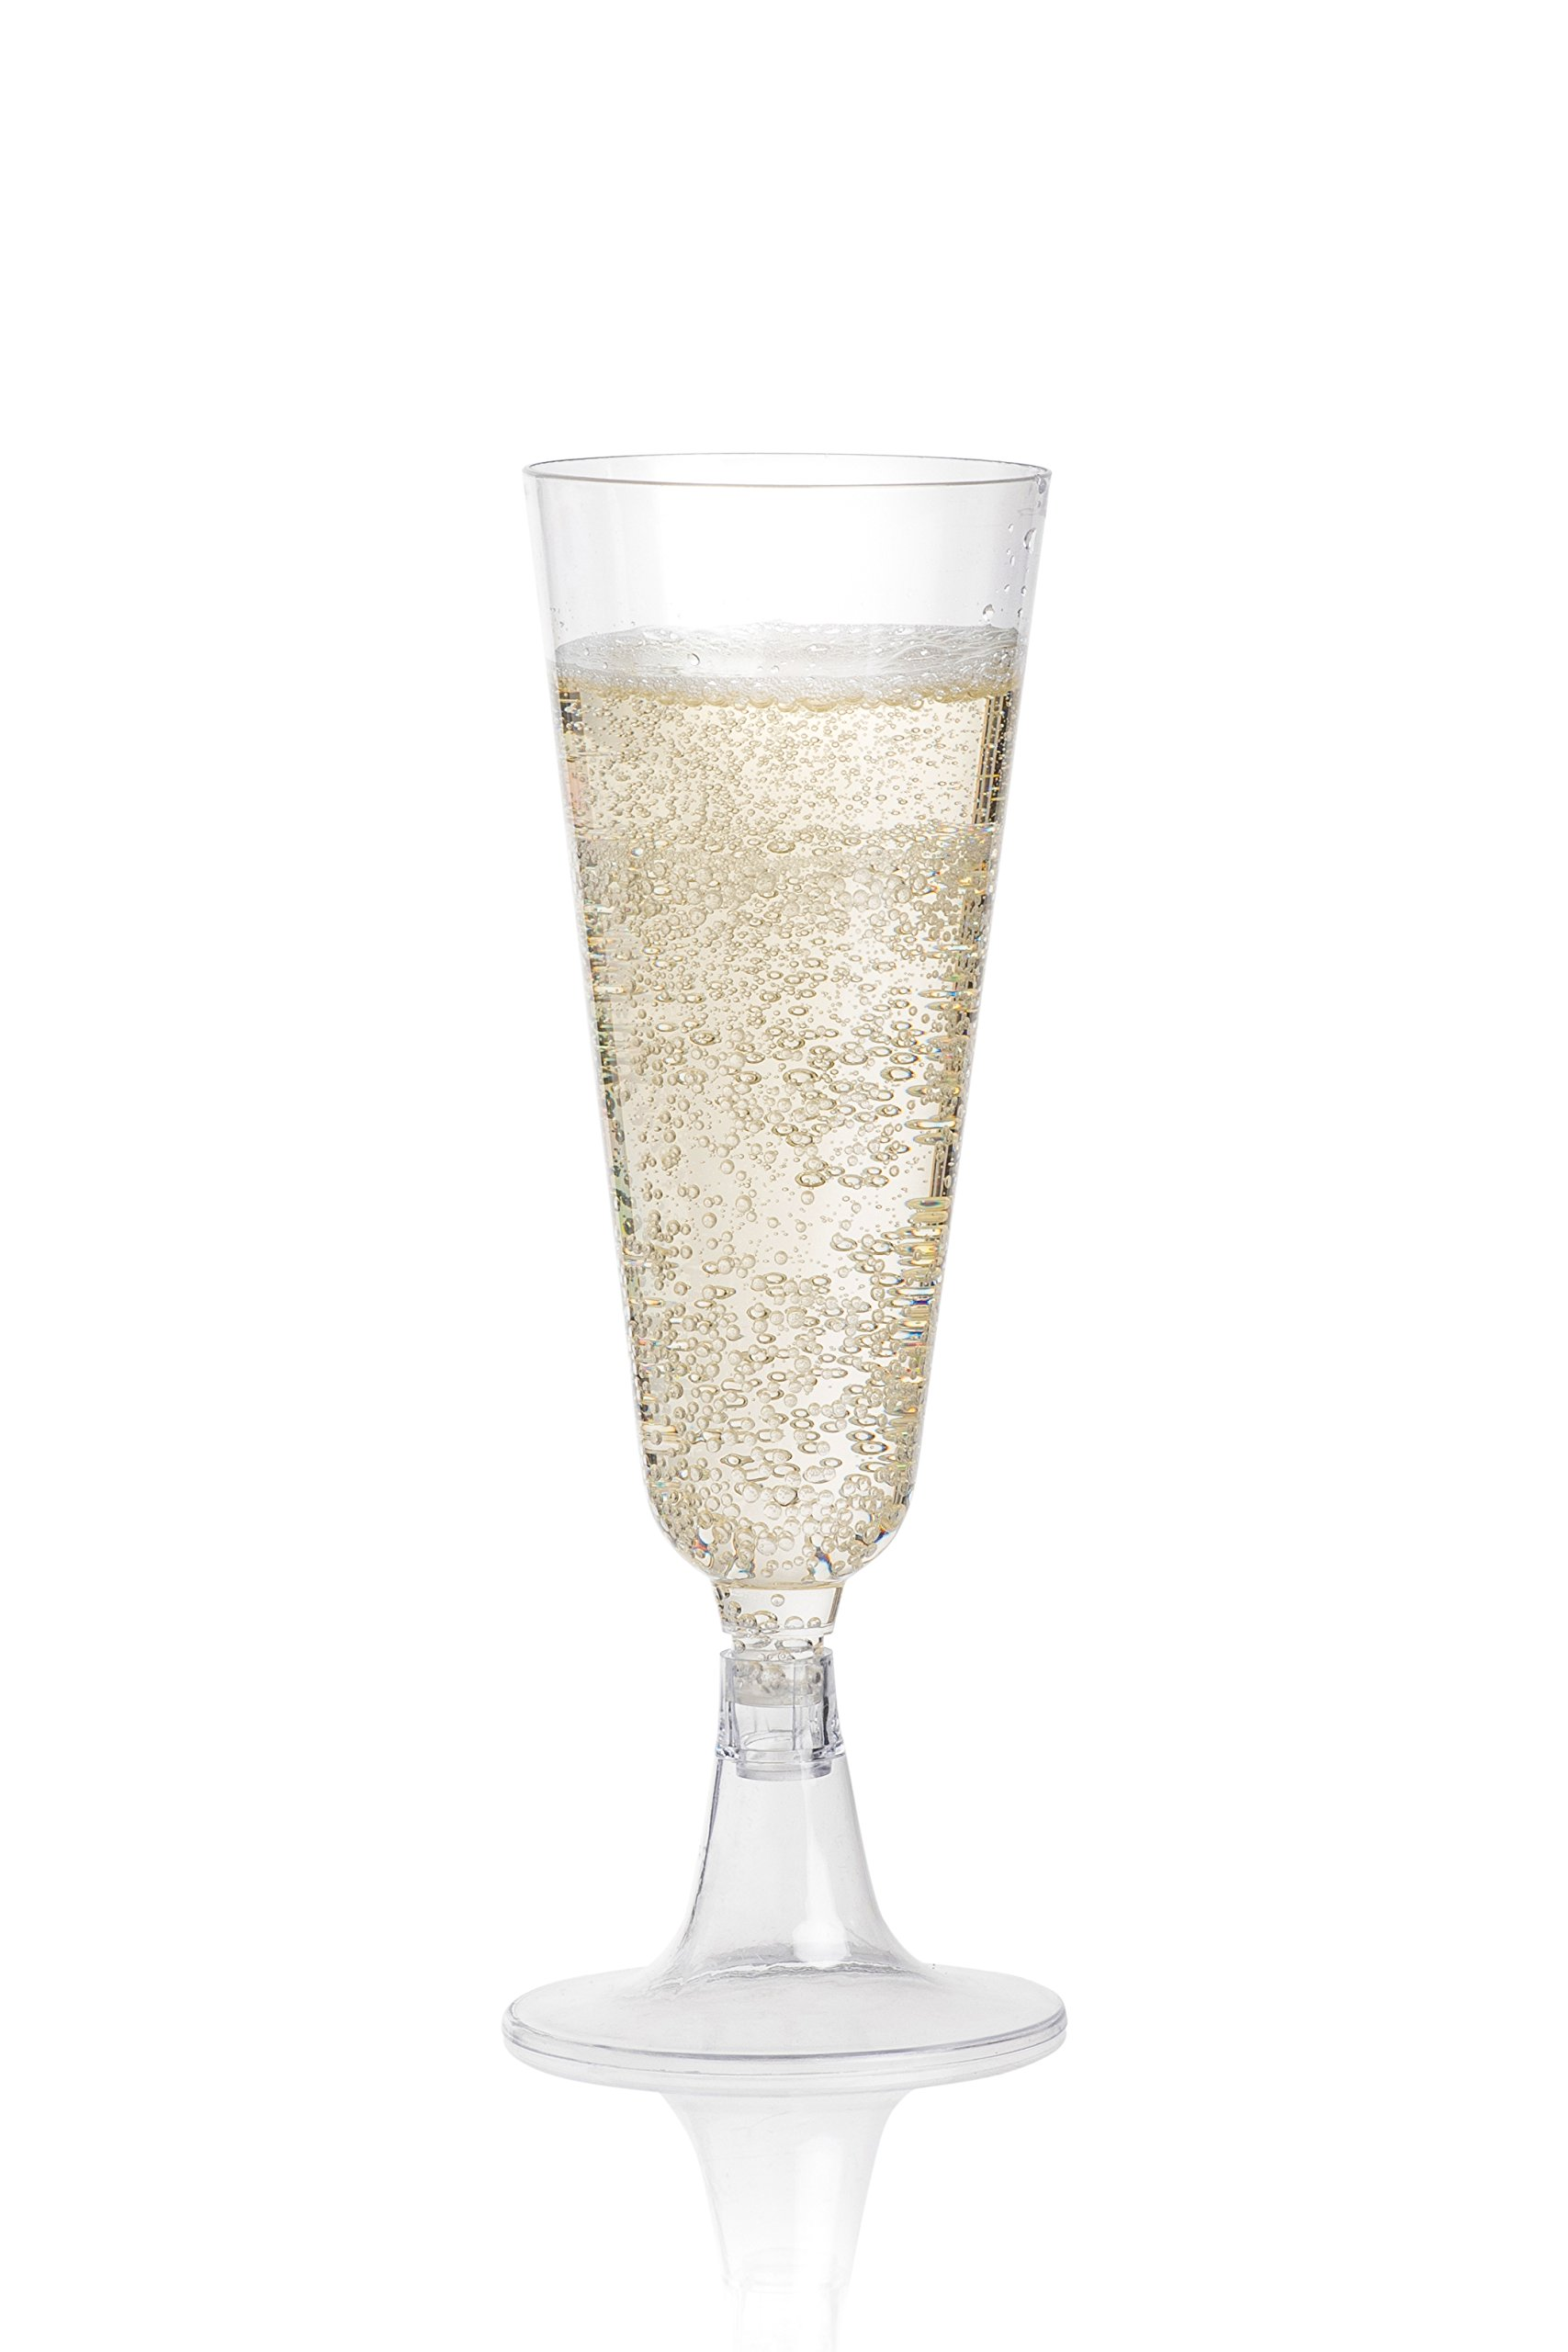 DRINKET Plastic Champagne Flutes 5oz Cups Toasting Glasses 2 Piece Champagne Flutes Set Bulk 100 Disposable Pk Shatterproof for Wedding Mimosa Bar Wine Party Supplies by Prestee